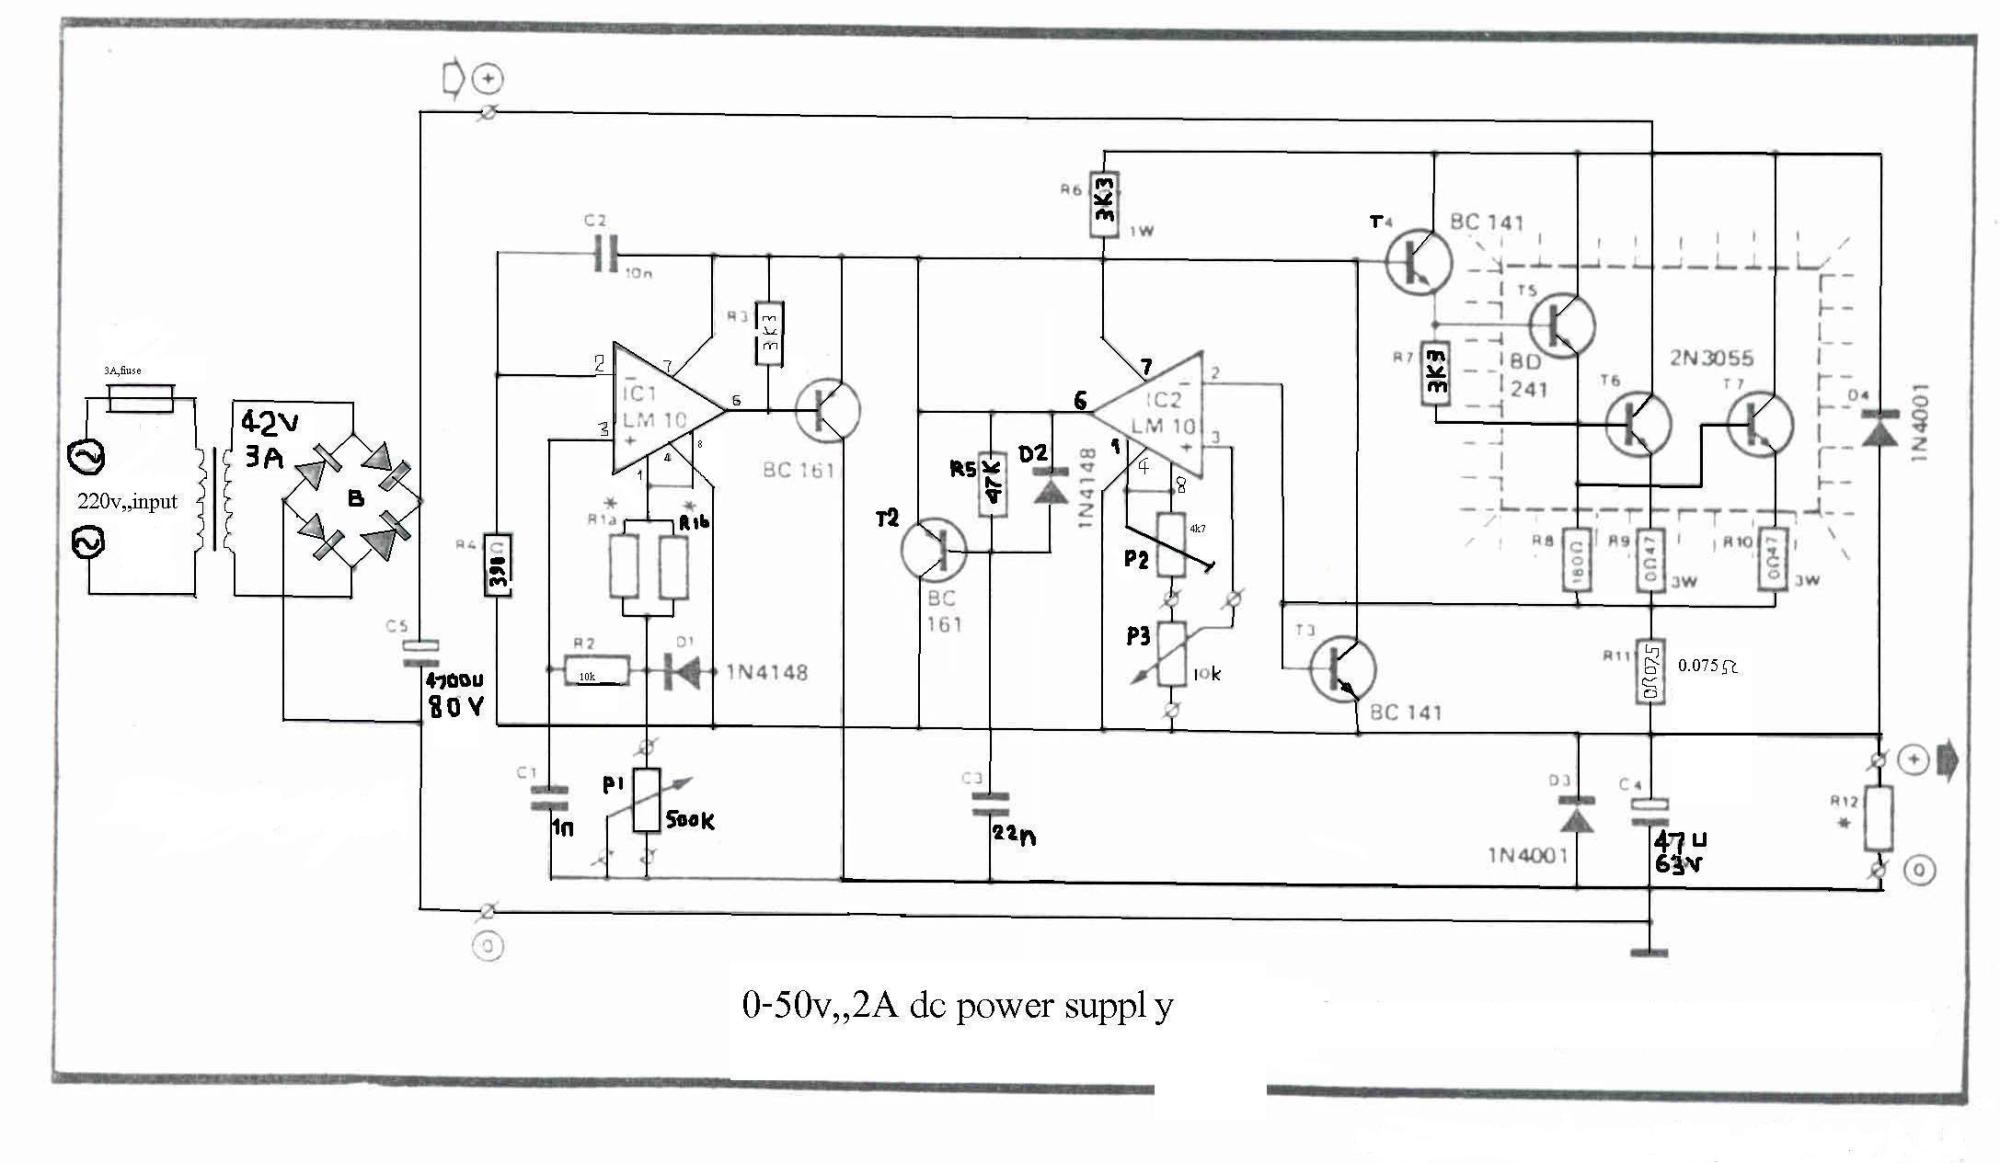 hight resolution of i use the lm10 ic because it has a reference voltage and that s useful for dc power supply with two ics can take different output voltage and amperage